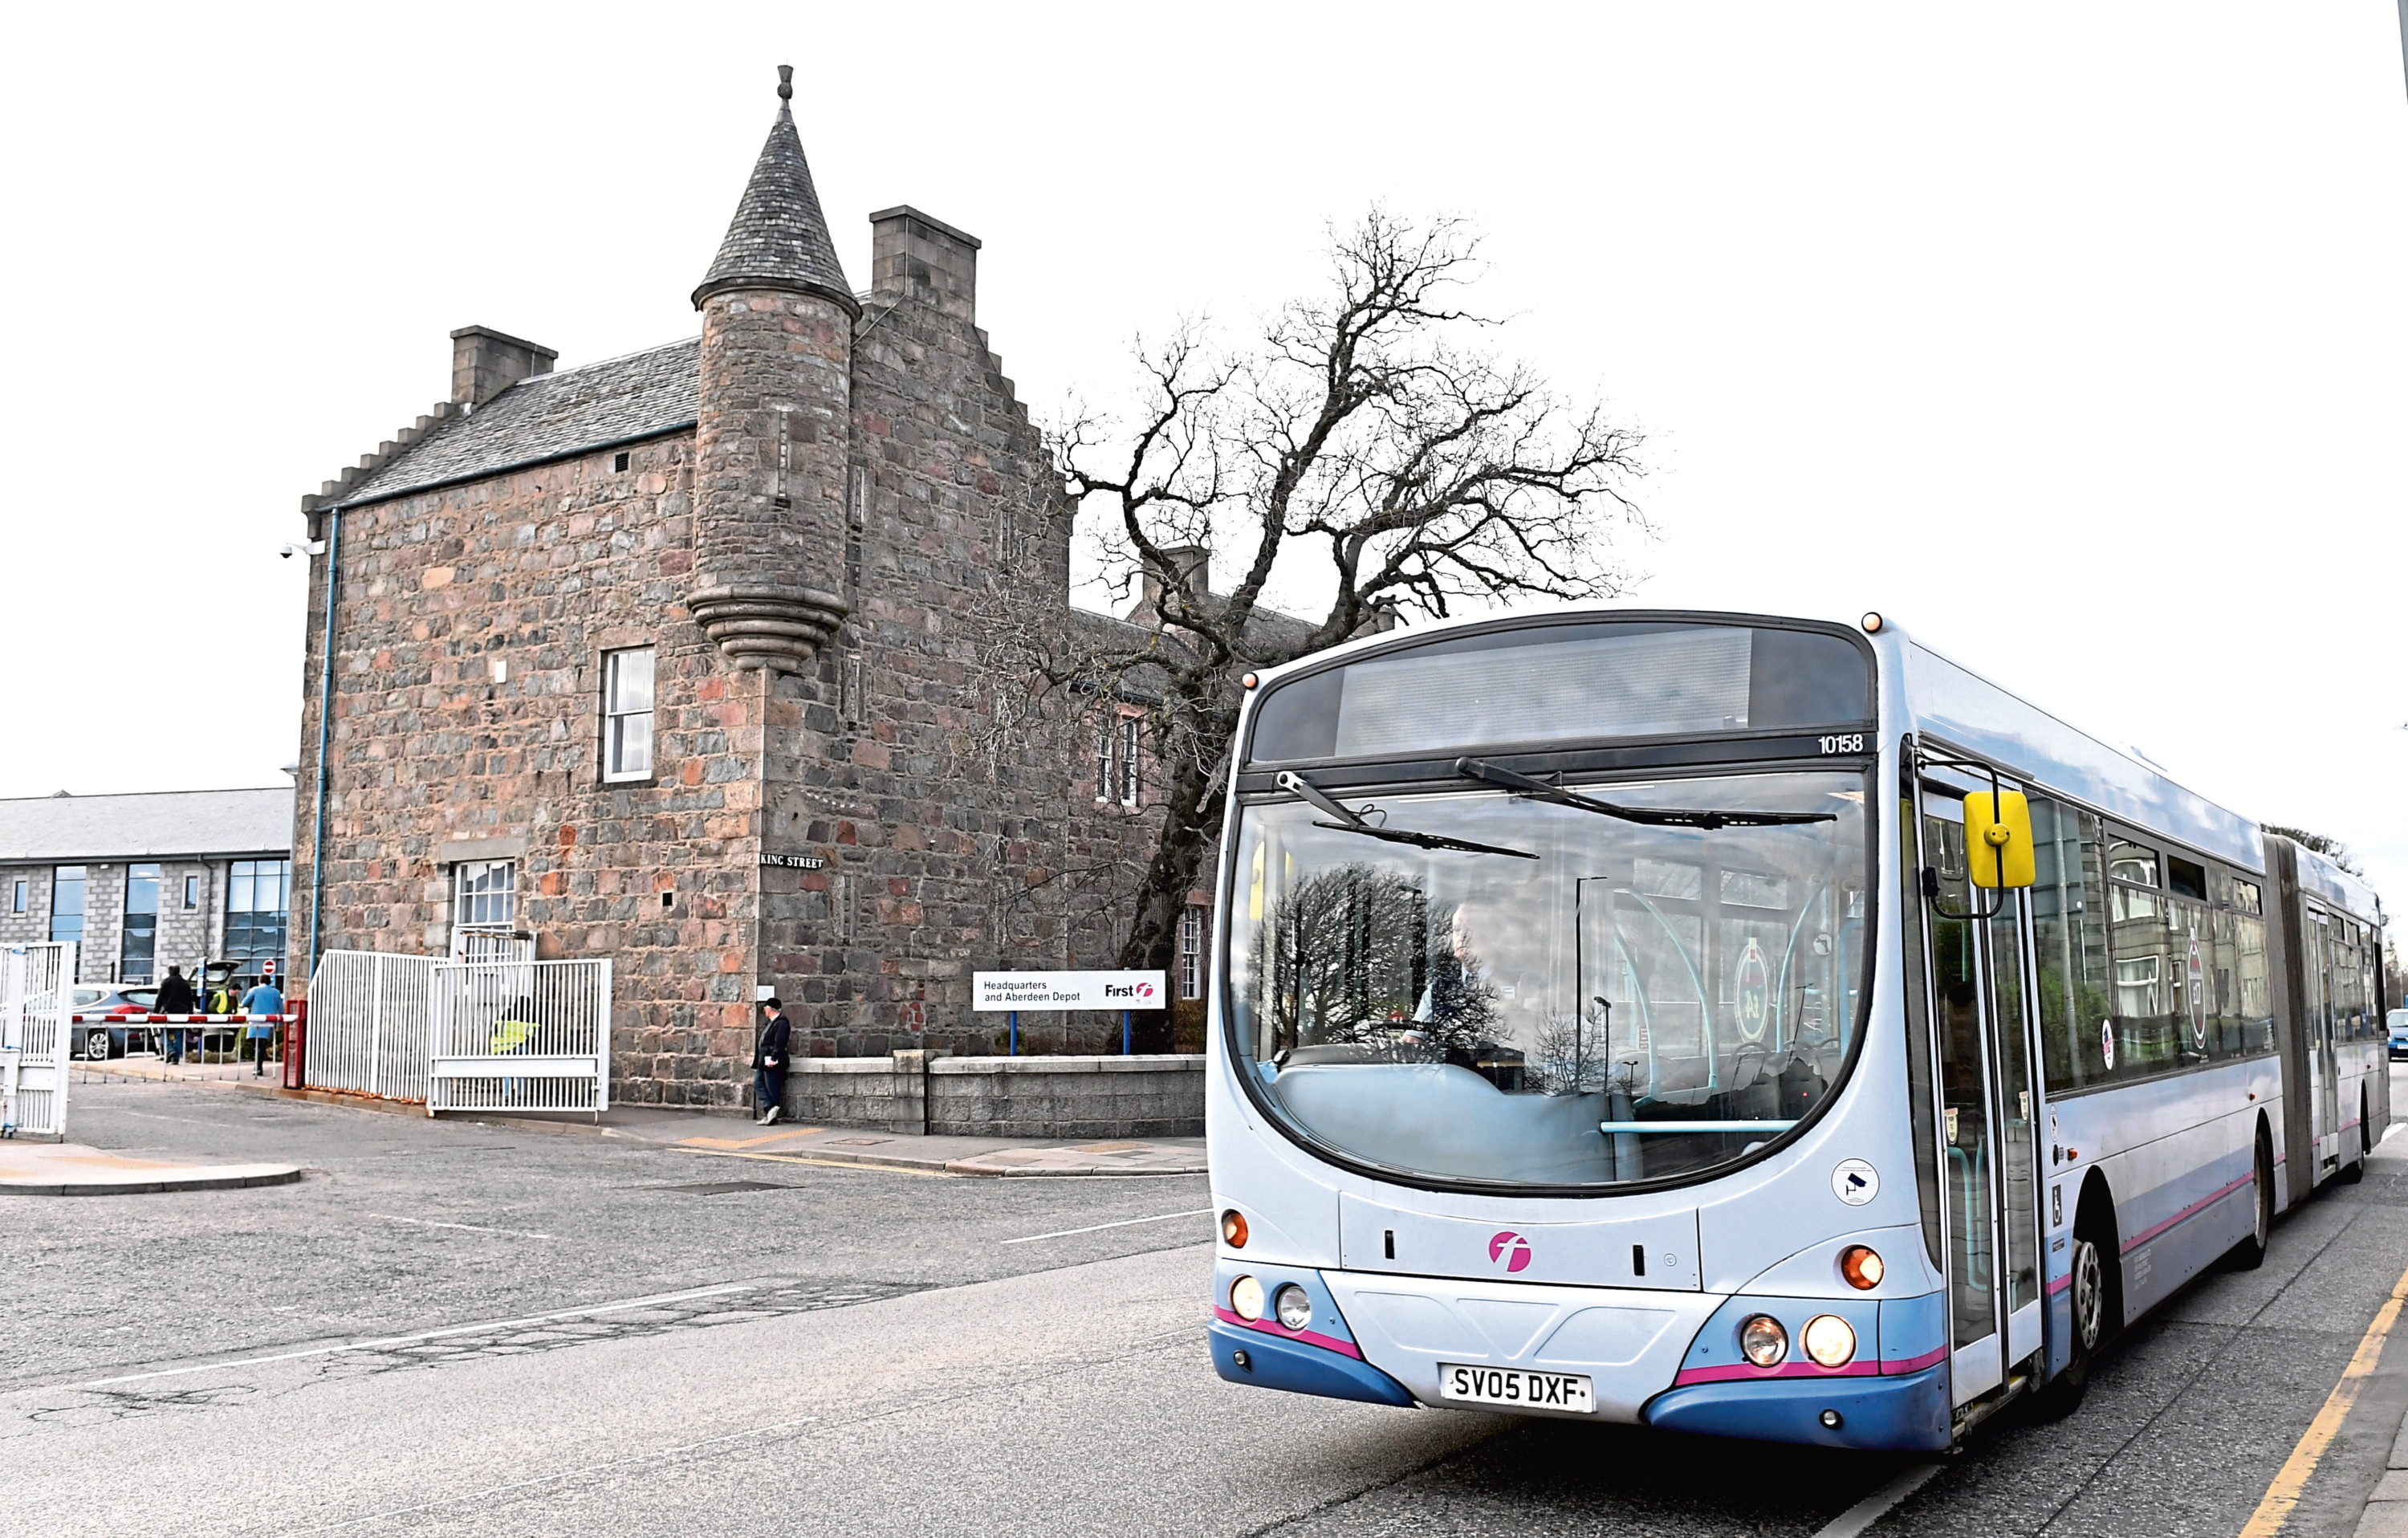 First Aberdeen has launched a consultation into planned alterations which could affect at least 10 services across the city